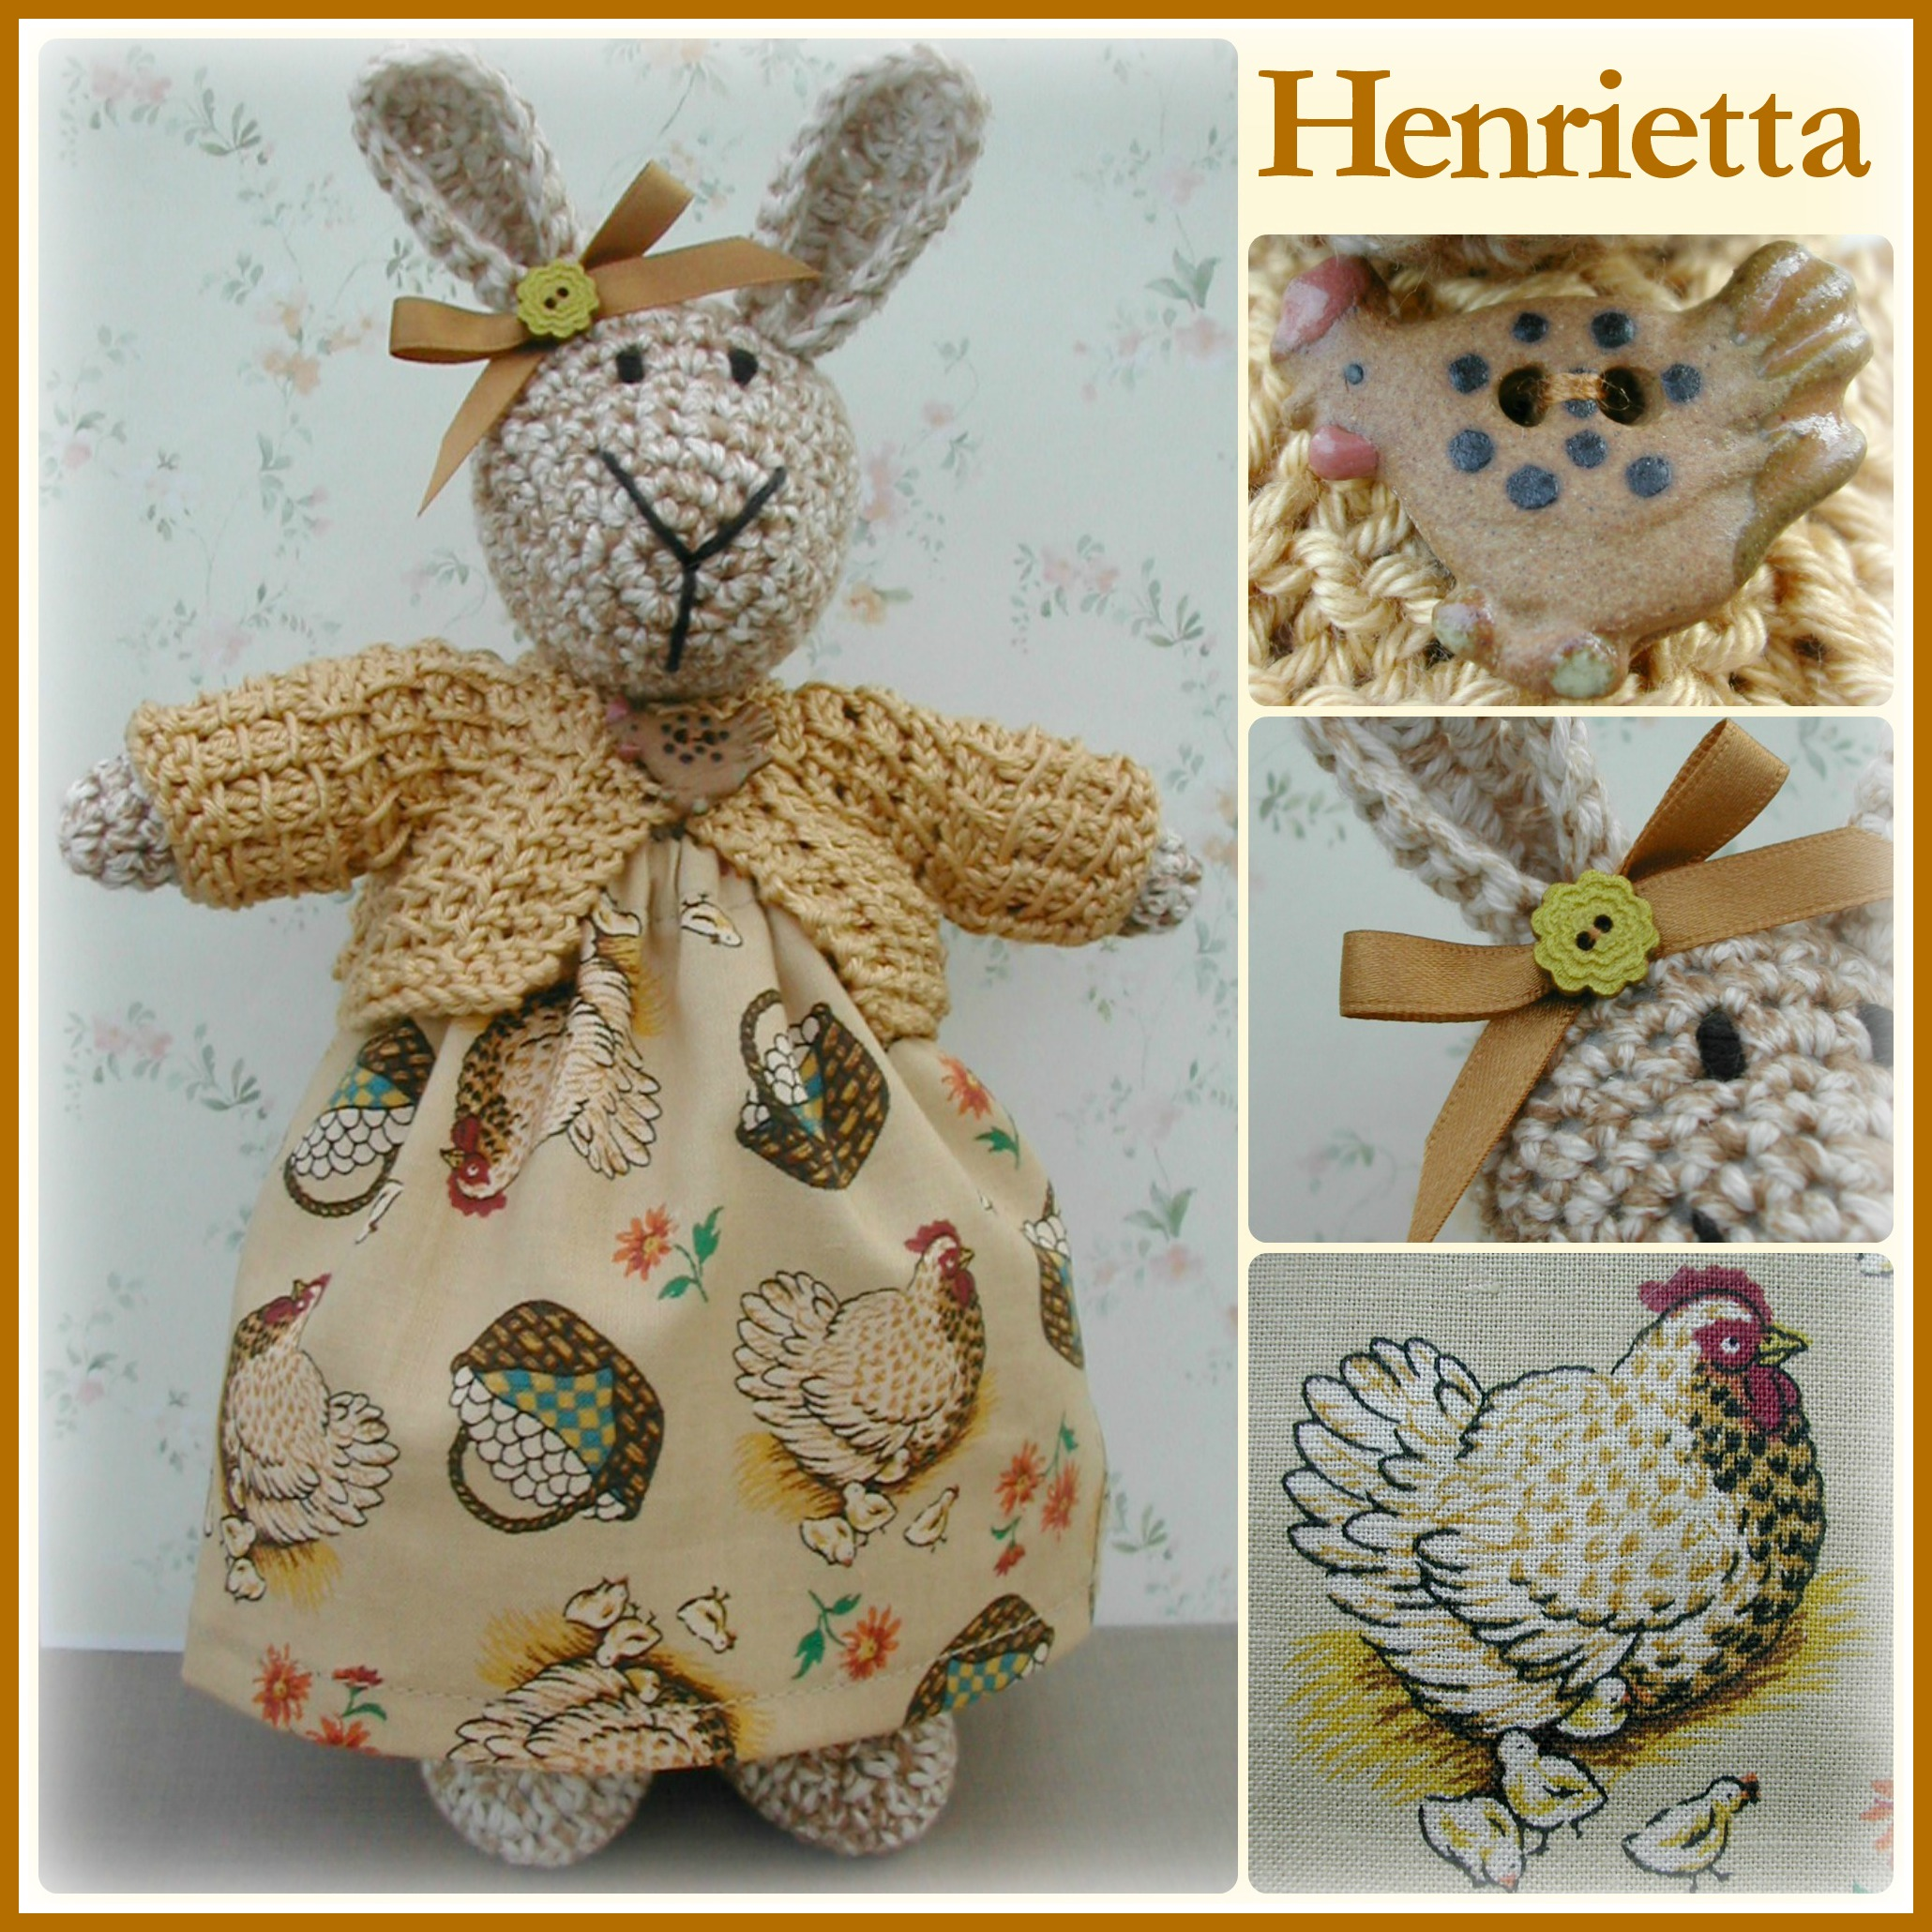 Henrietta Collage